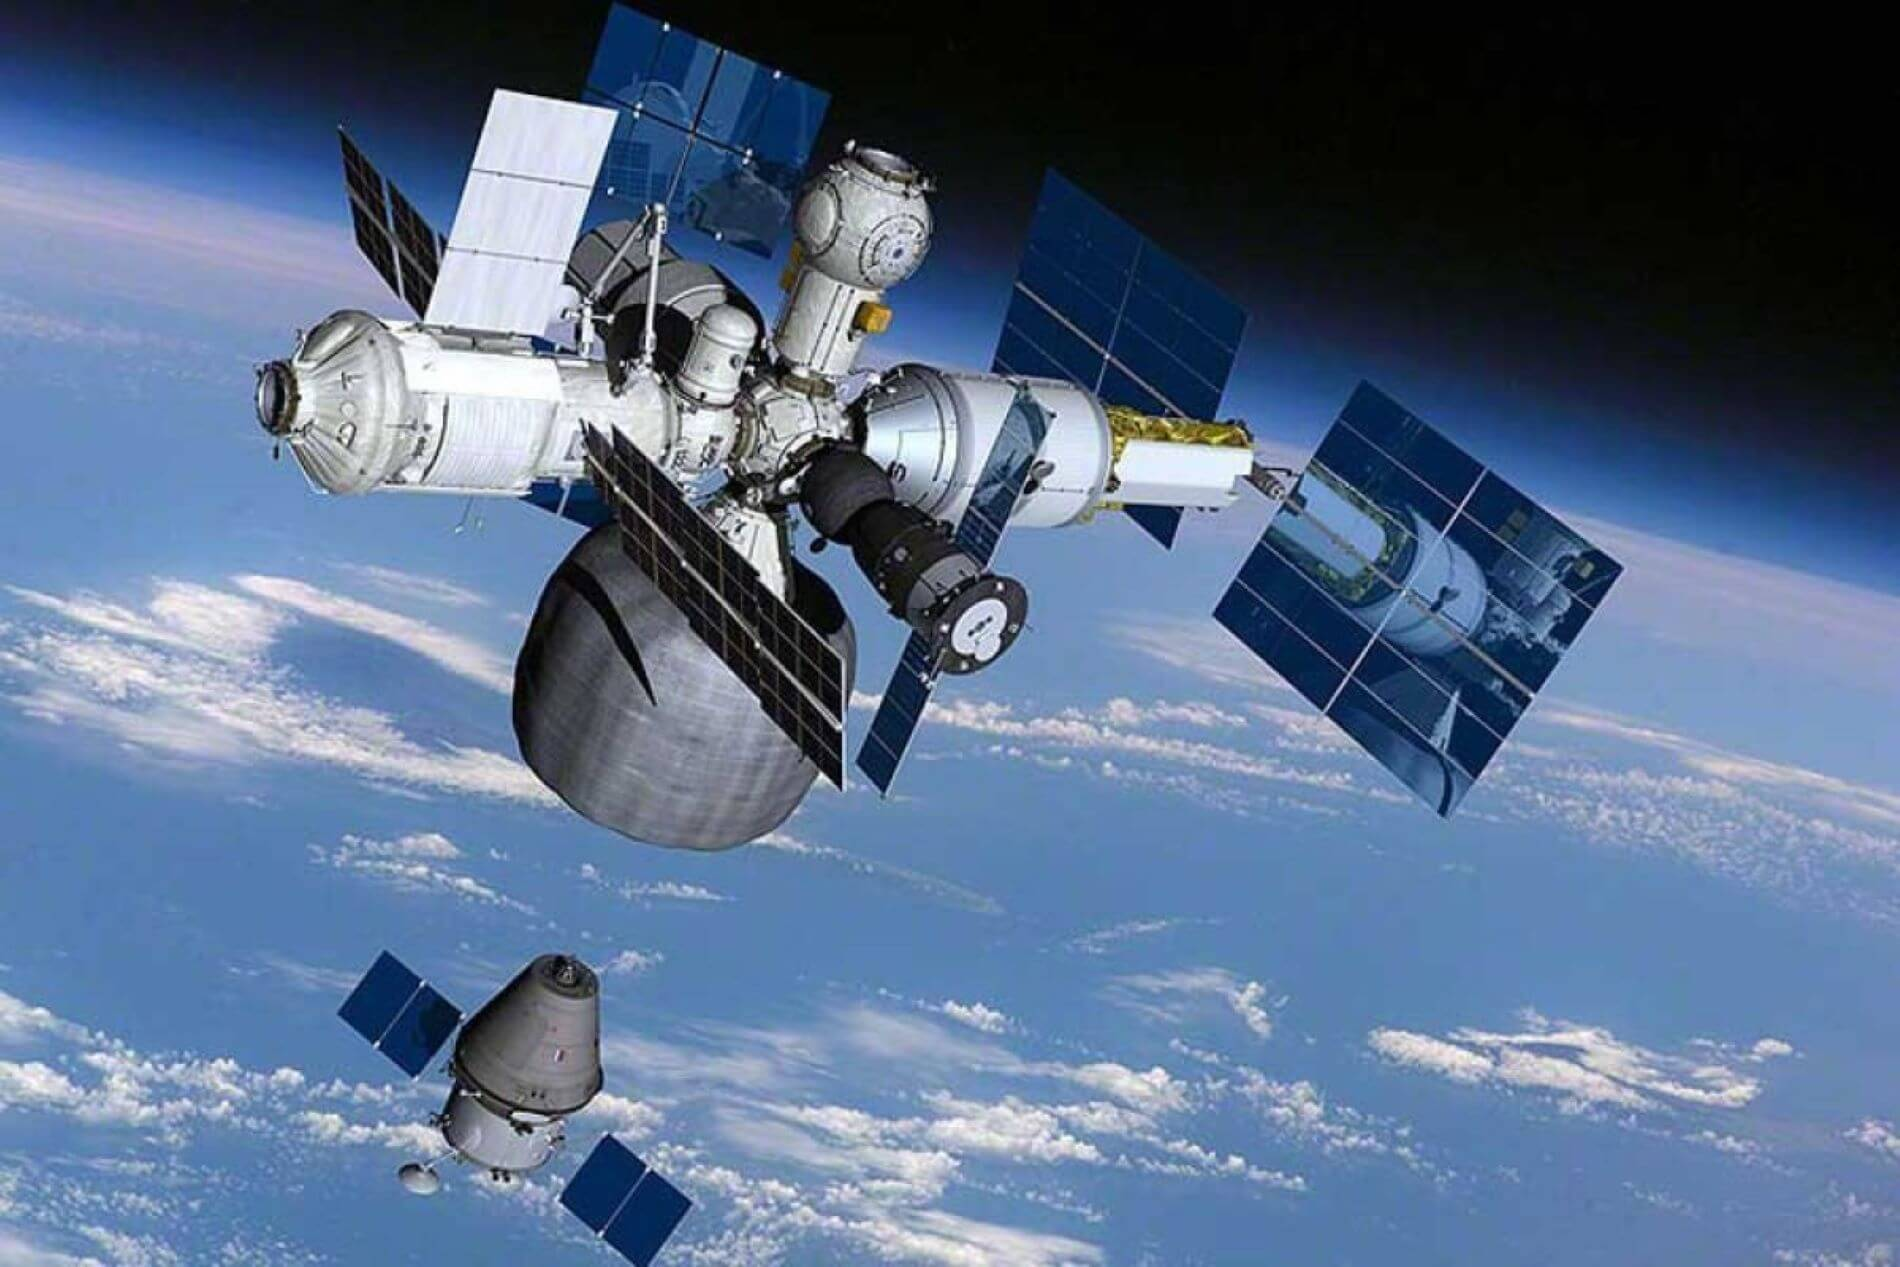 Russia's New Space Station To Be Autonomous, Begin Deployment In 5-6 Years